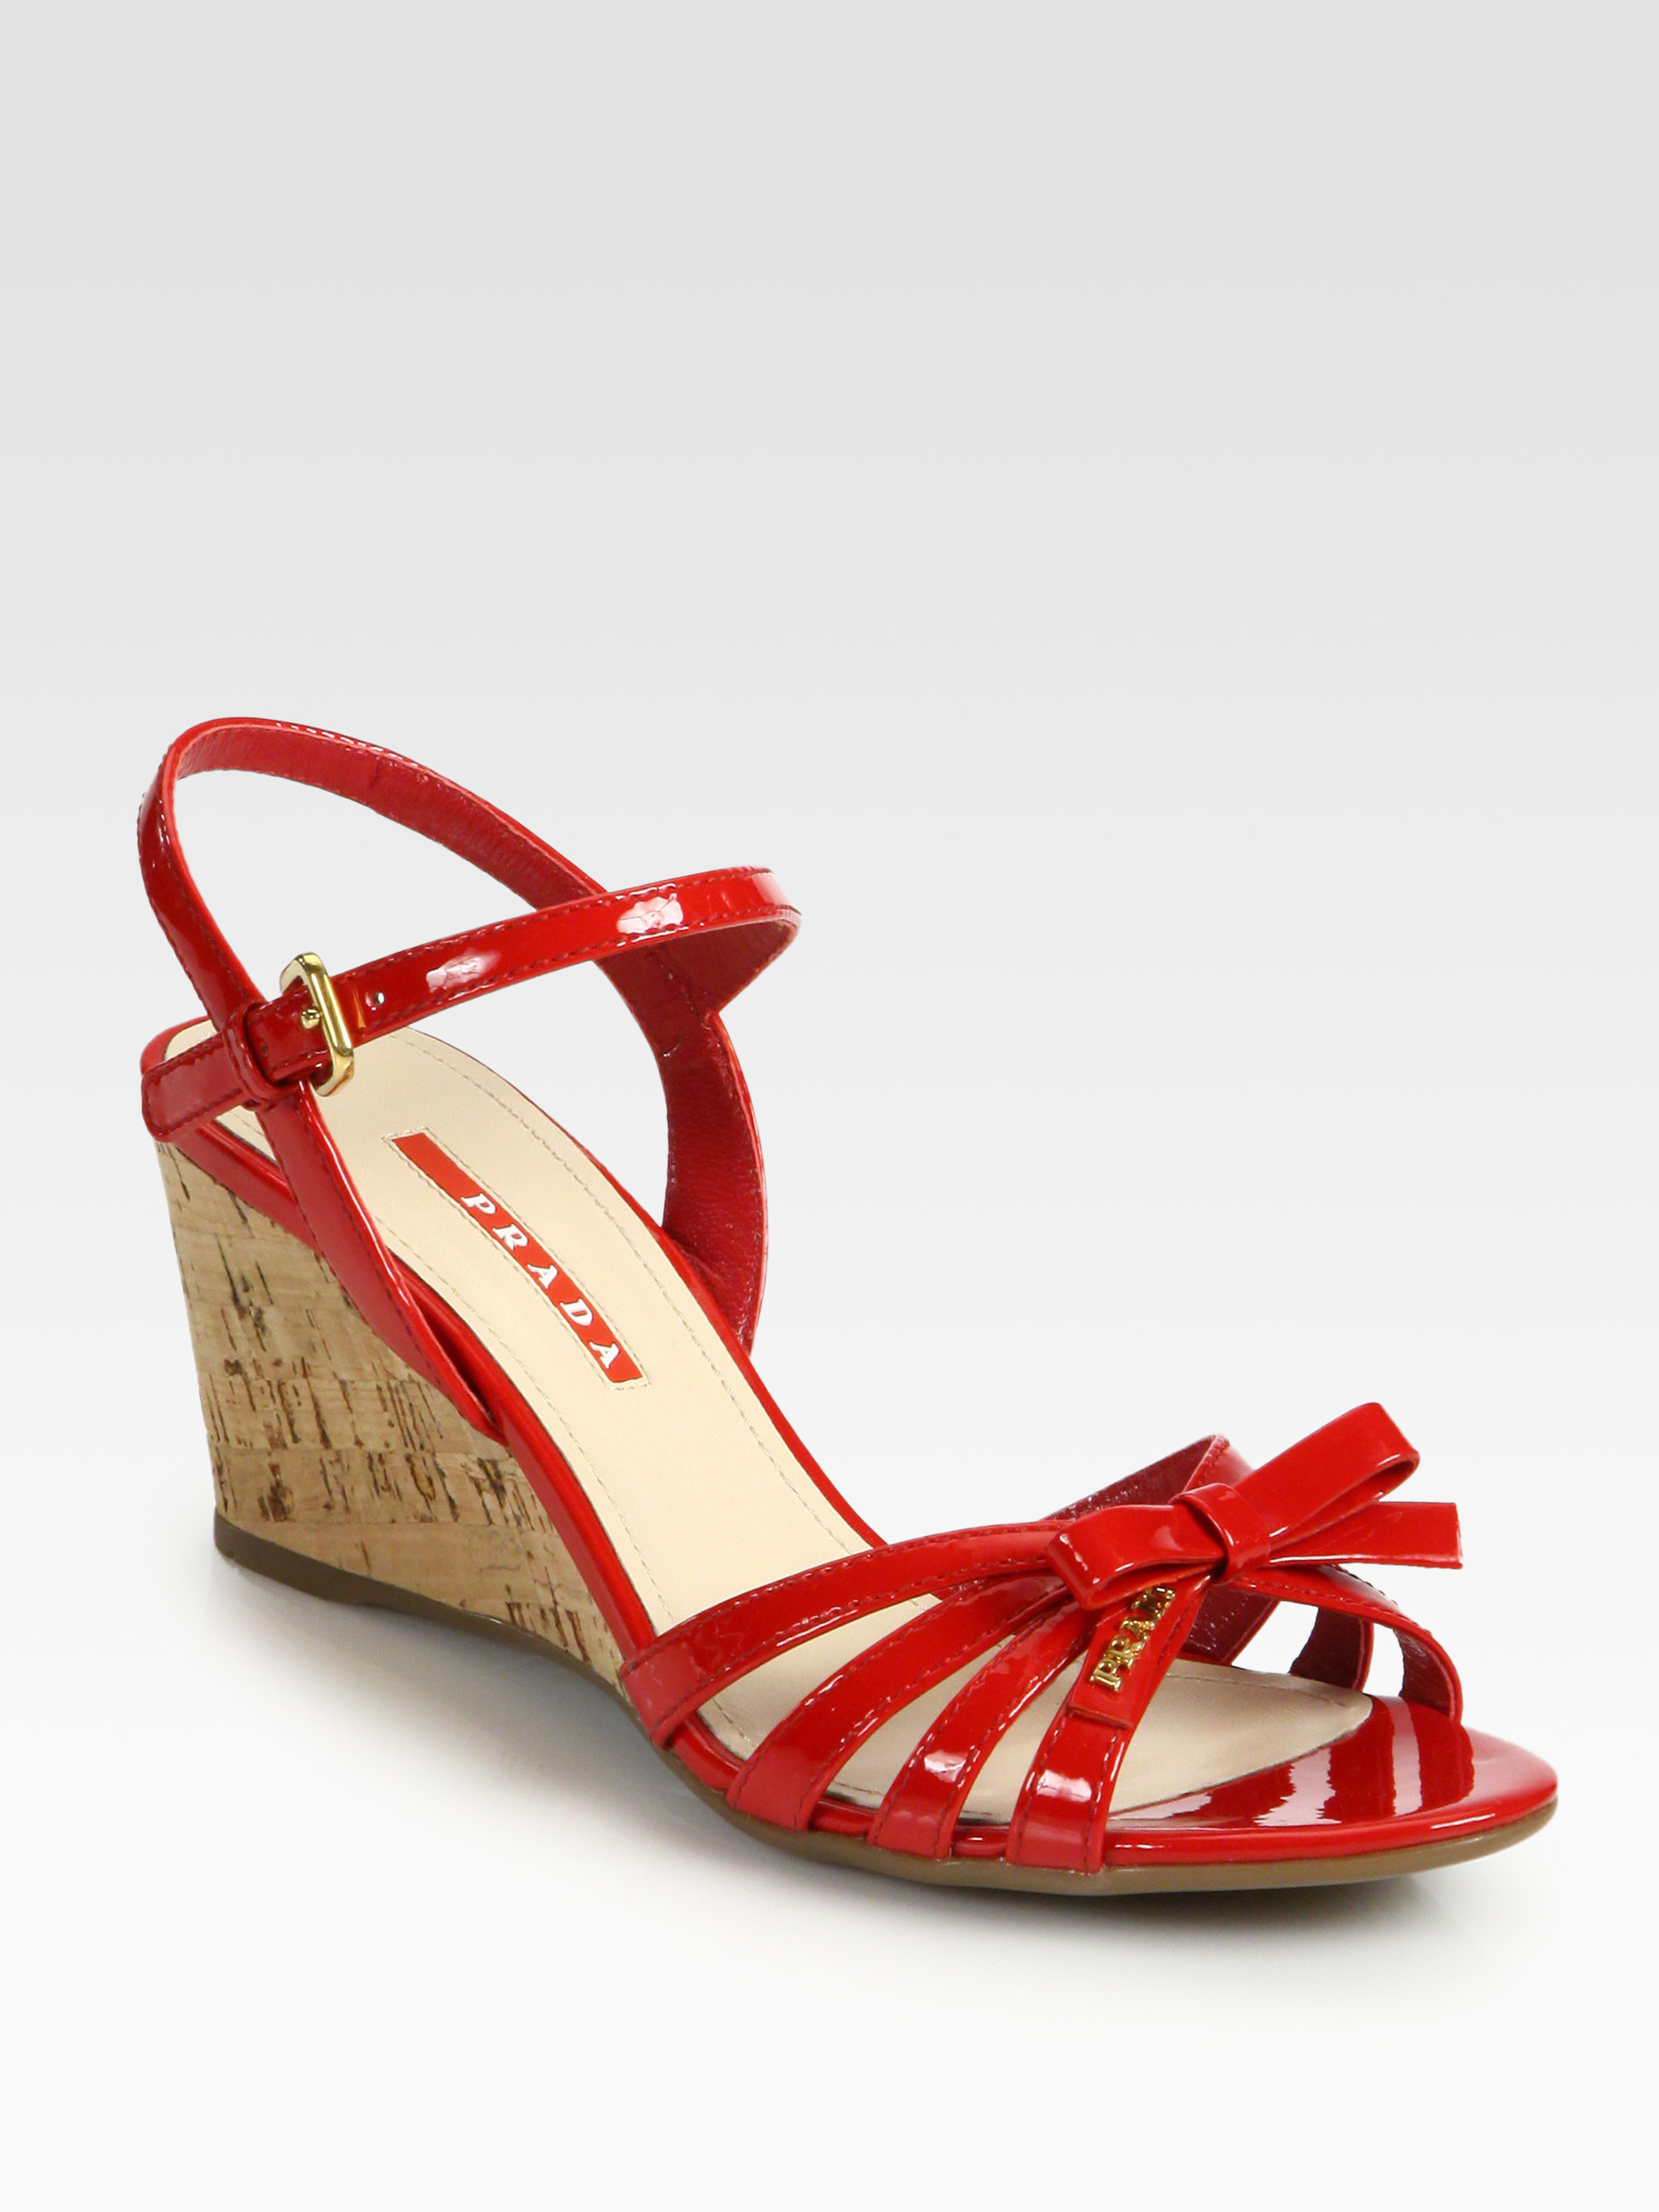 Prada Leather Bow Cork Wedge Sandals In Red Lyst